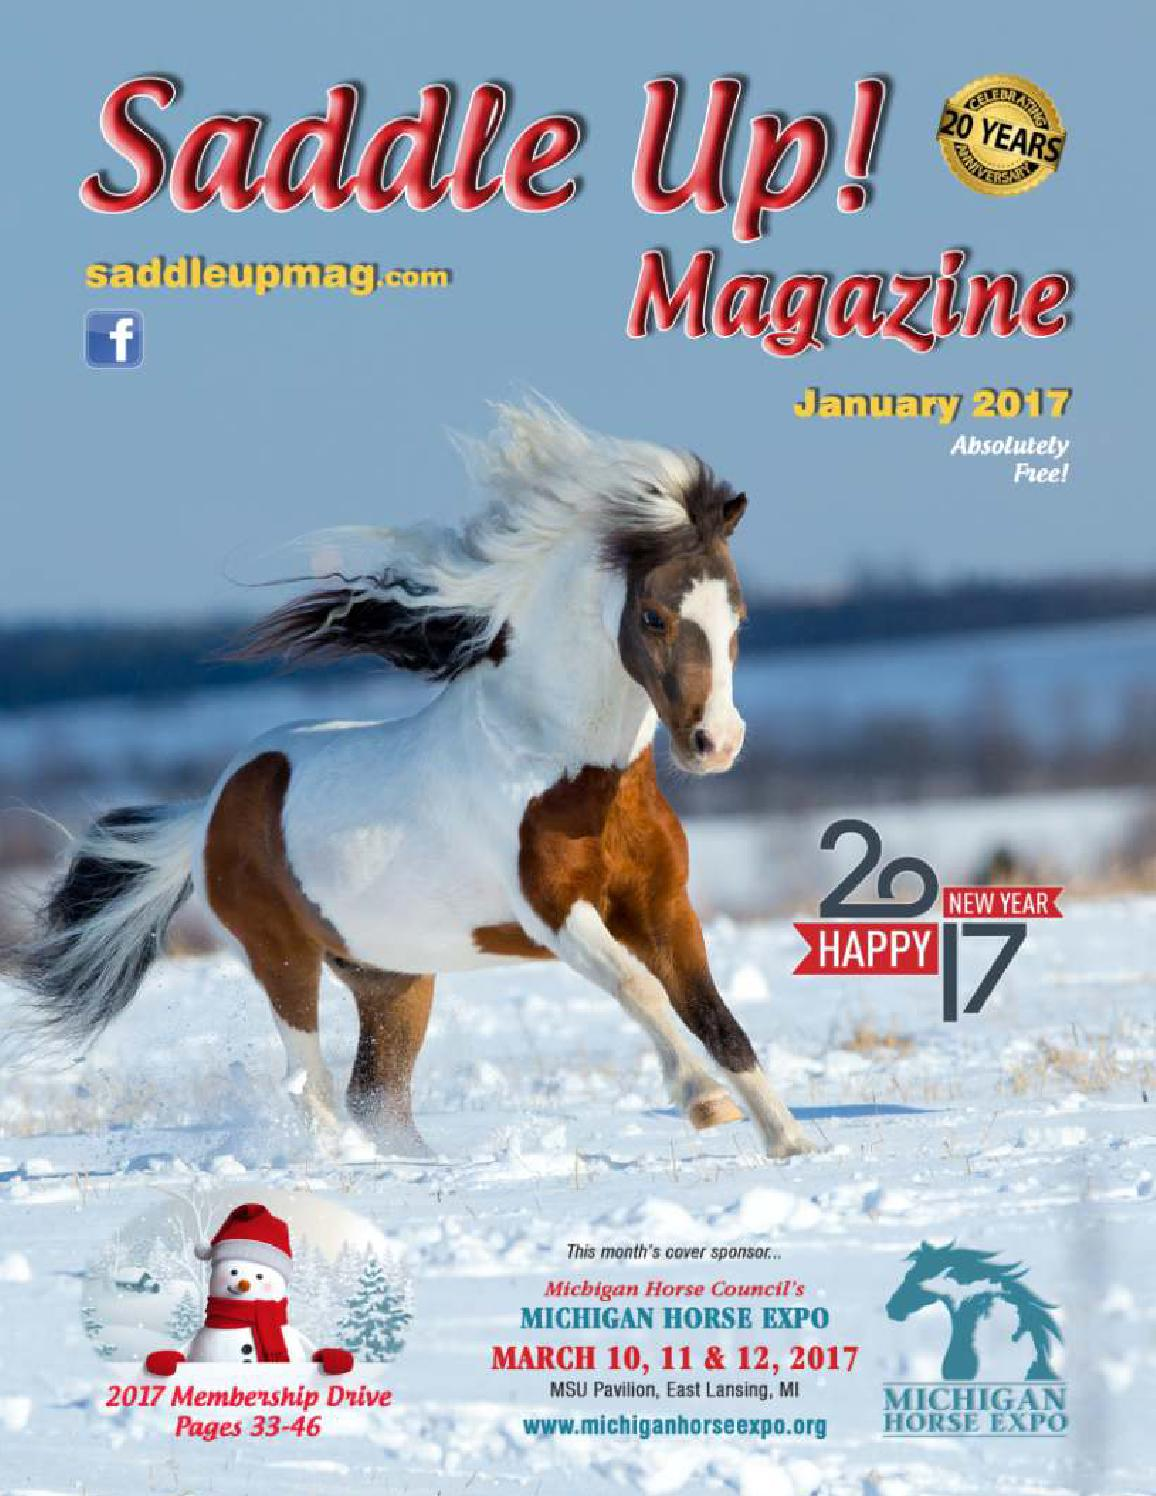 page_1 january 2017 saddle up! magazine by saddle up! magazine issuu  at crackthecode.co